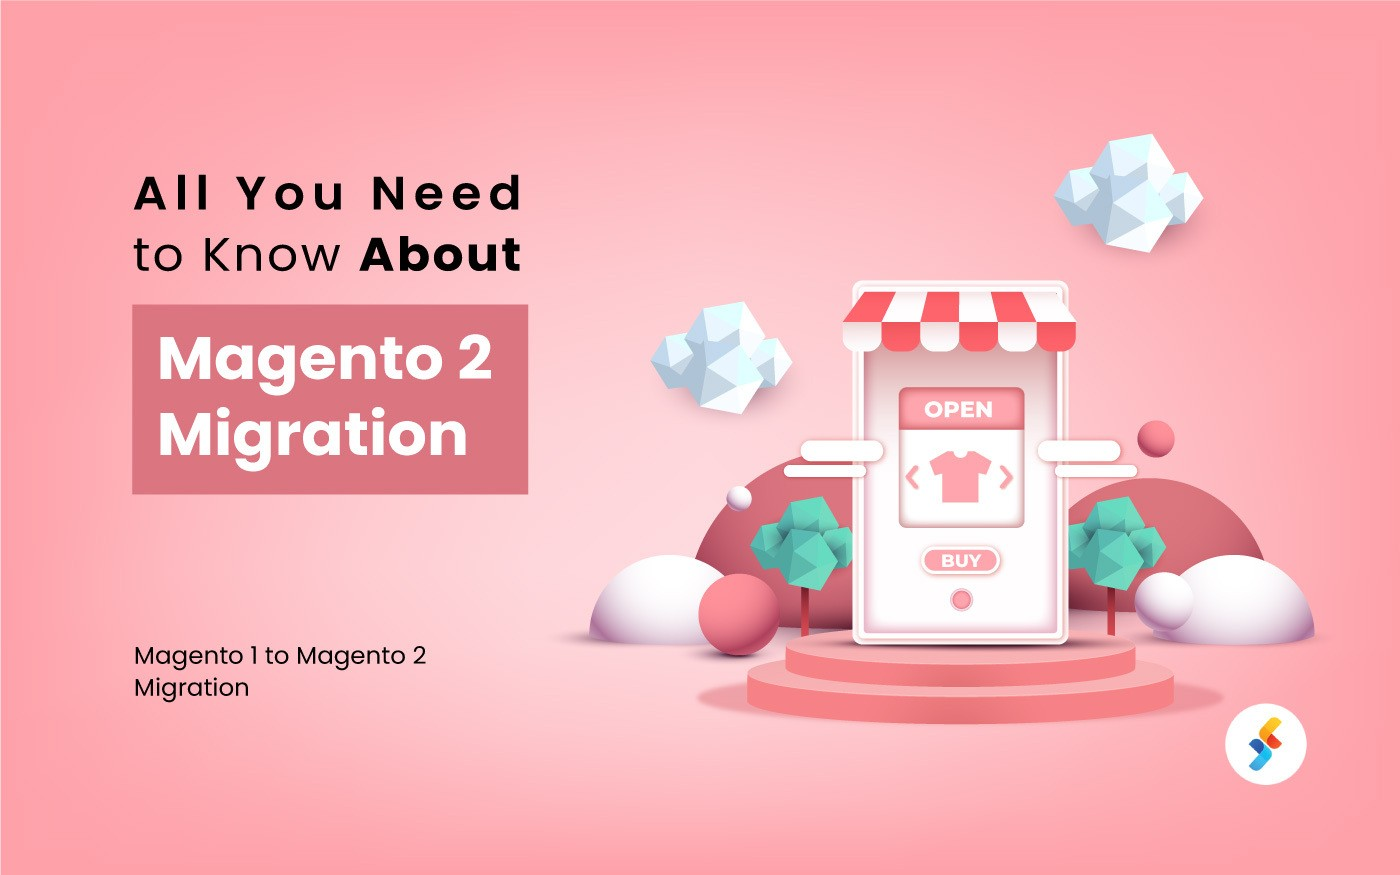 End of Magento 1's Life – All You Need to Know About Magento 2 Migration